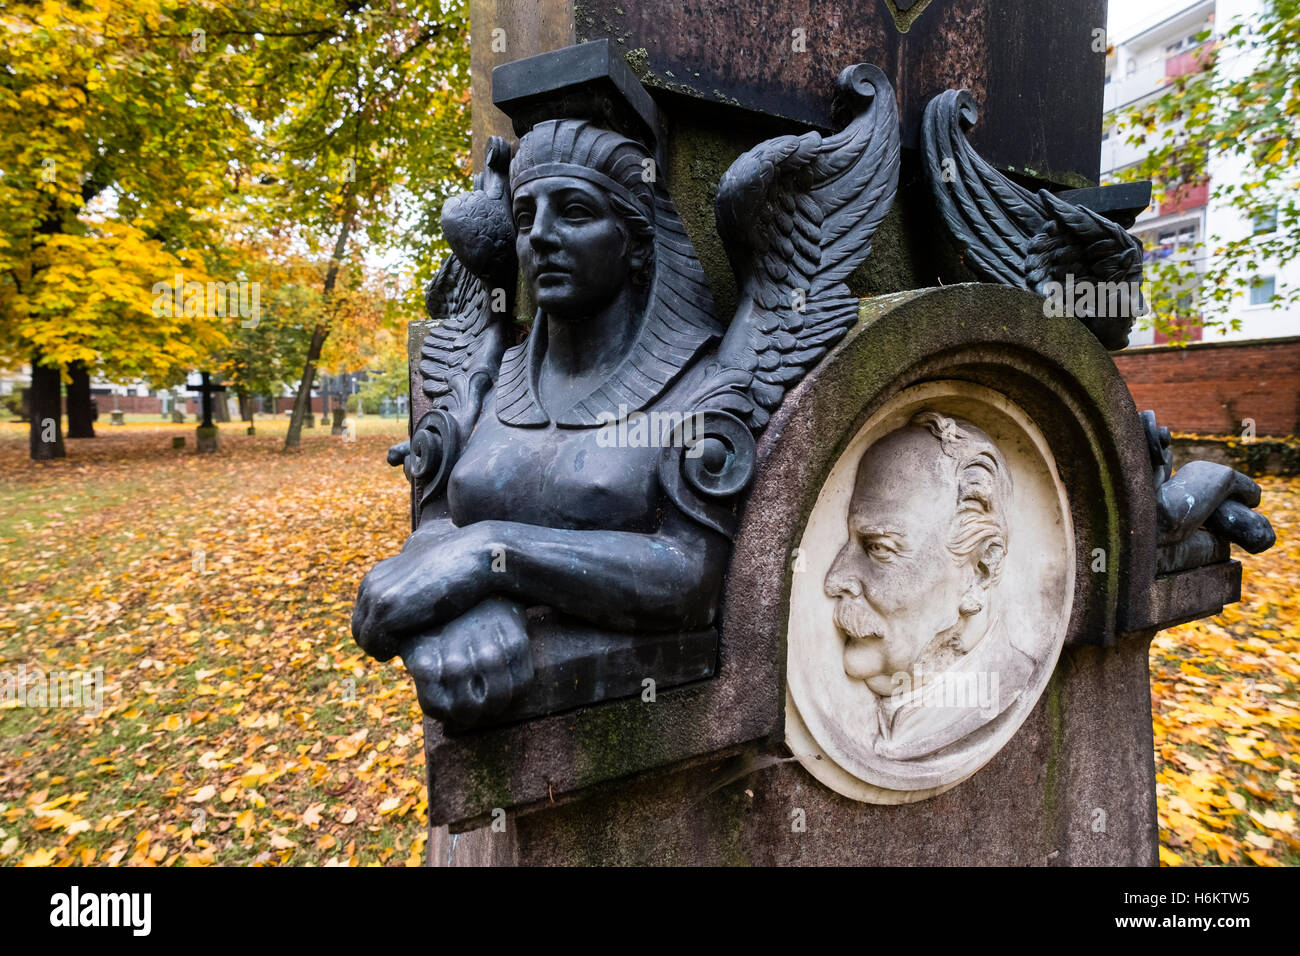 Detail of ornate grave in Military Cemetery, Alter Berliner Garnisonfriedhof on Linienstrasse in Mitte Berlin Germany - Stock Image